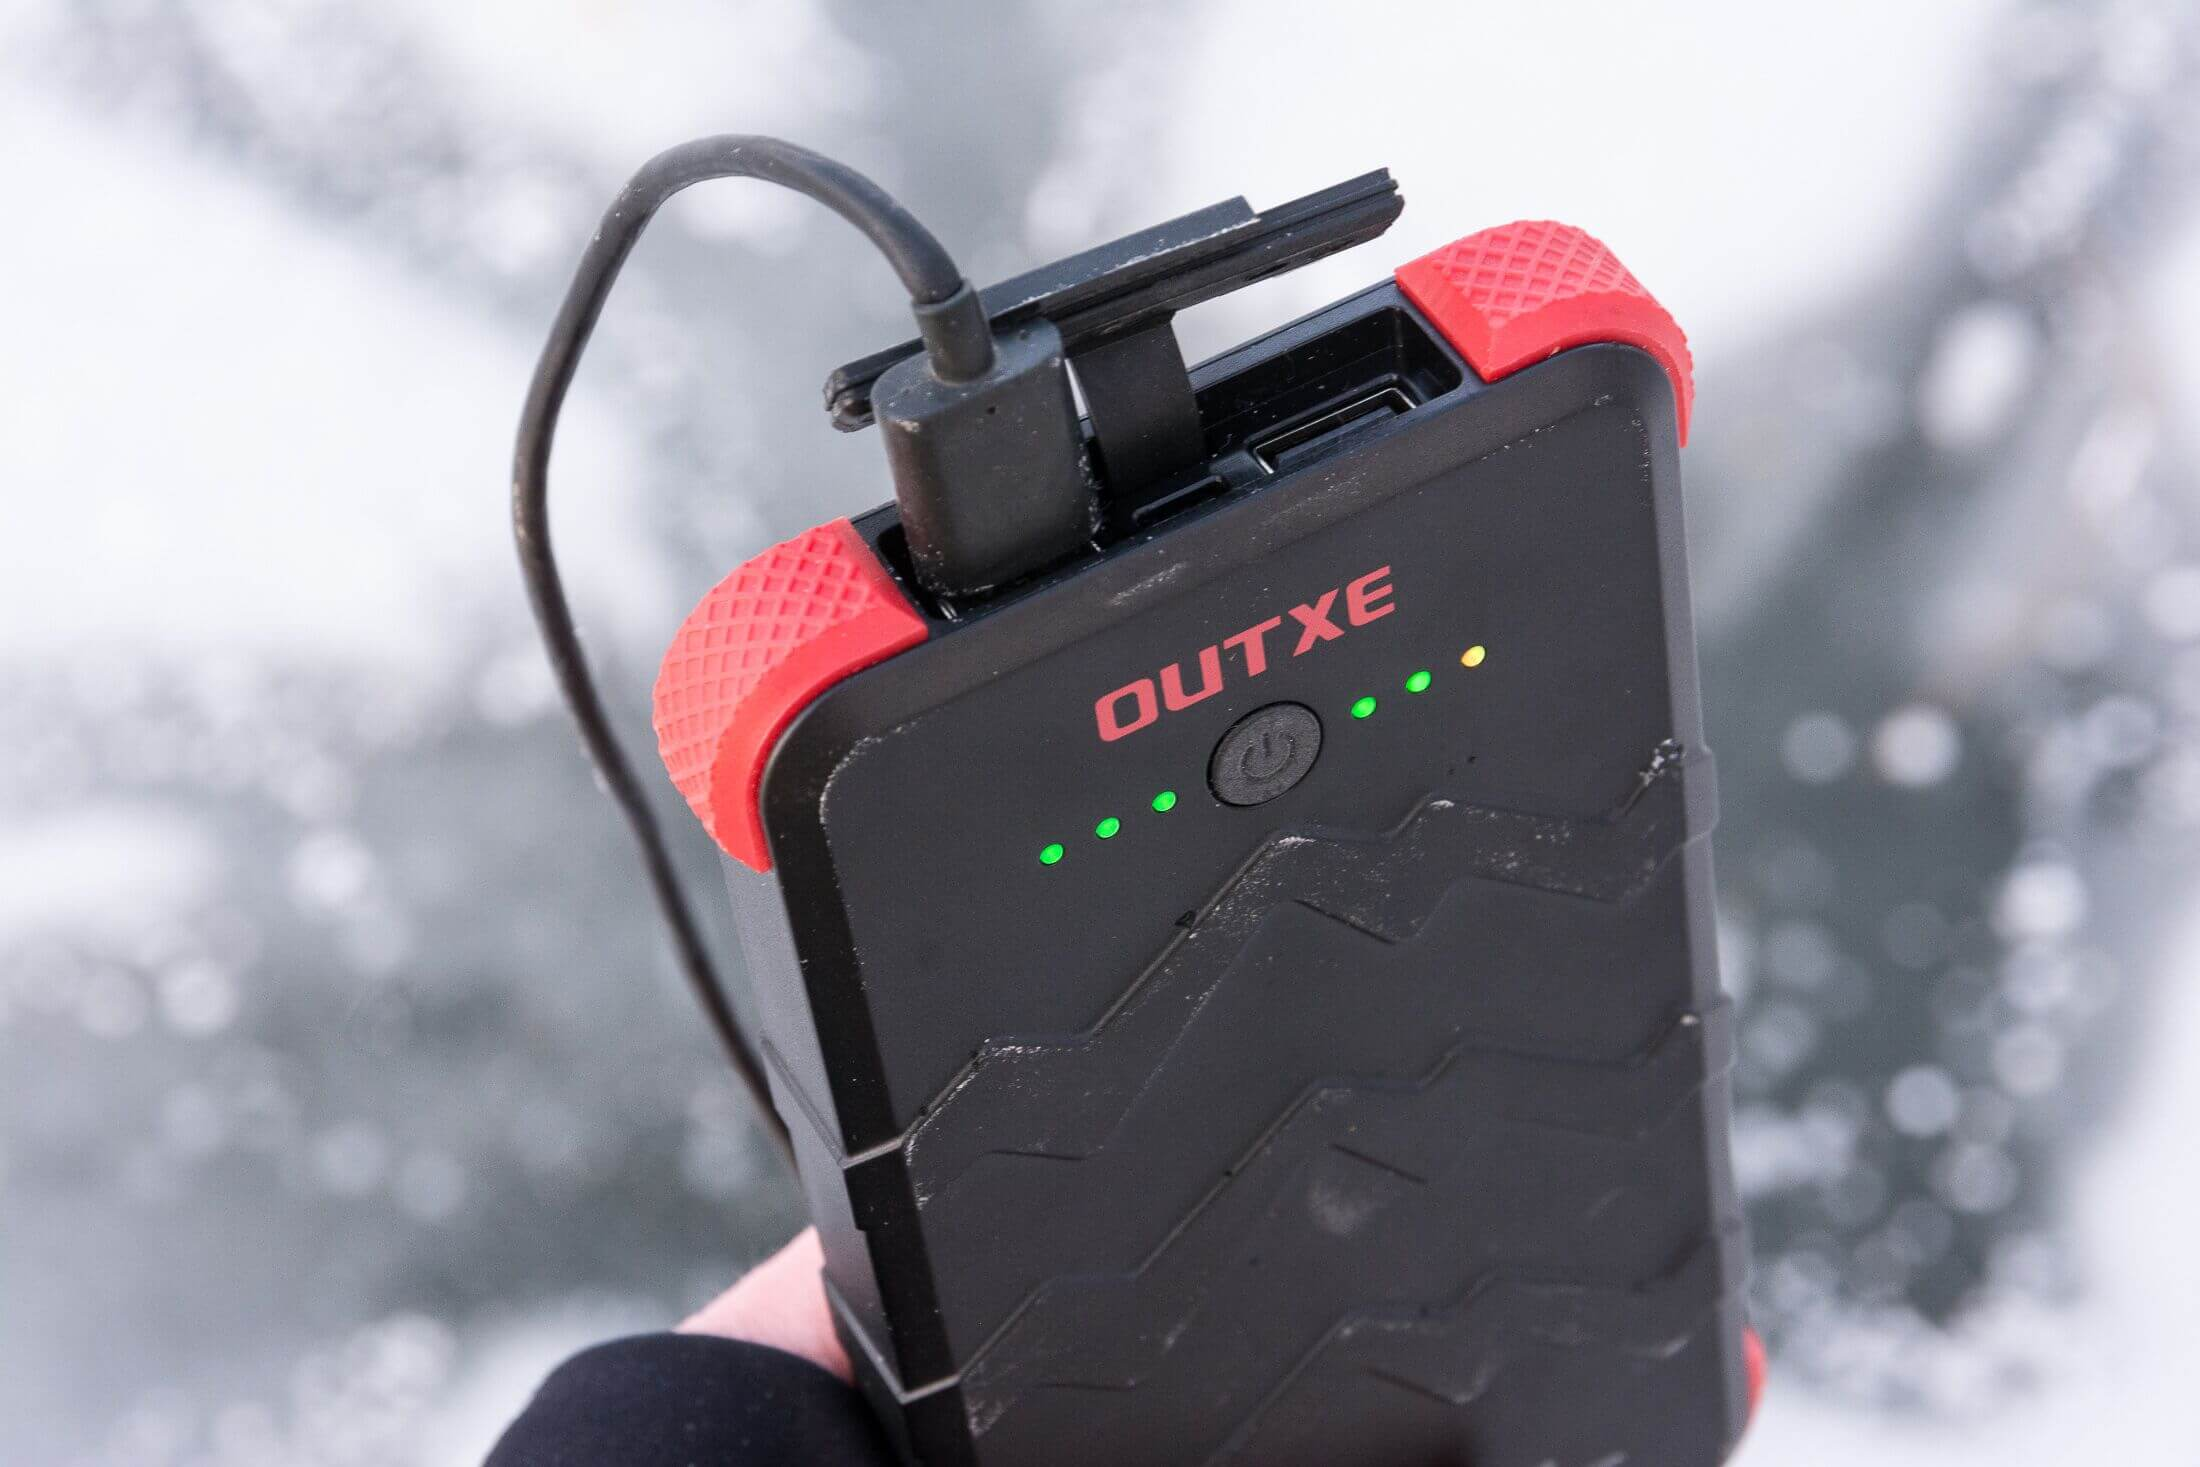 outxe rugged power bank review on the freiheitenwelt.de